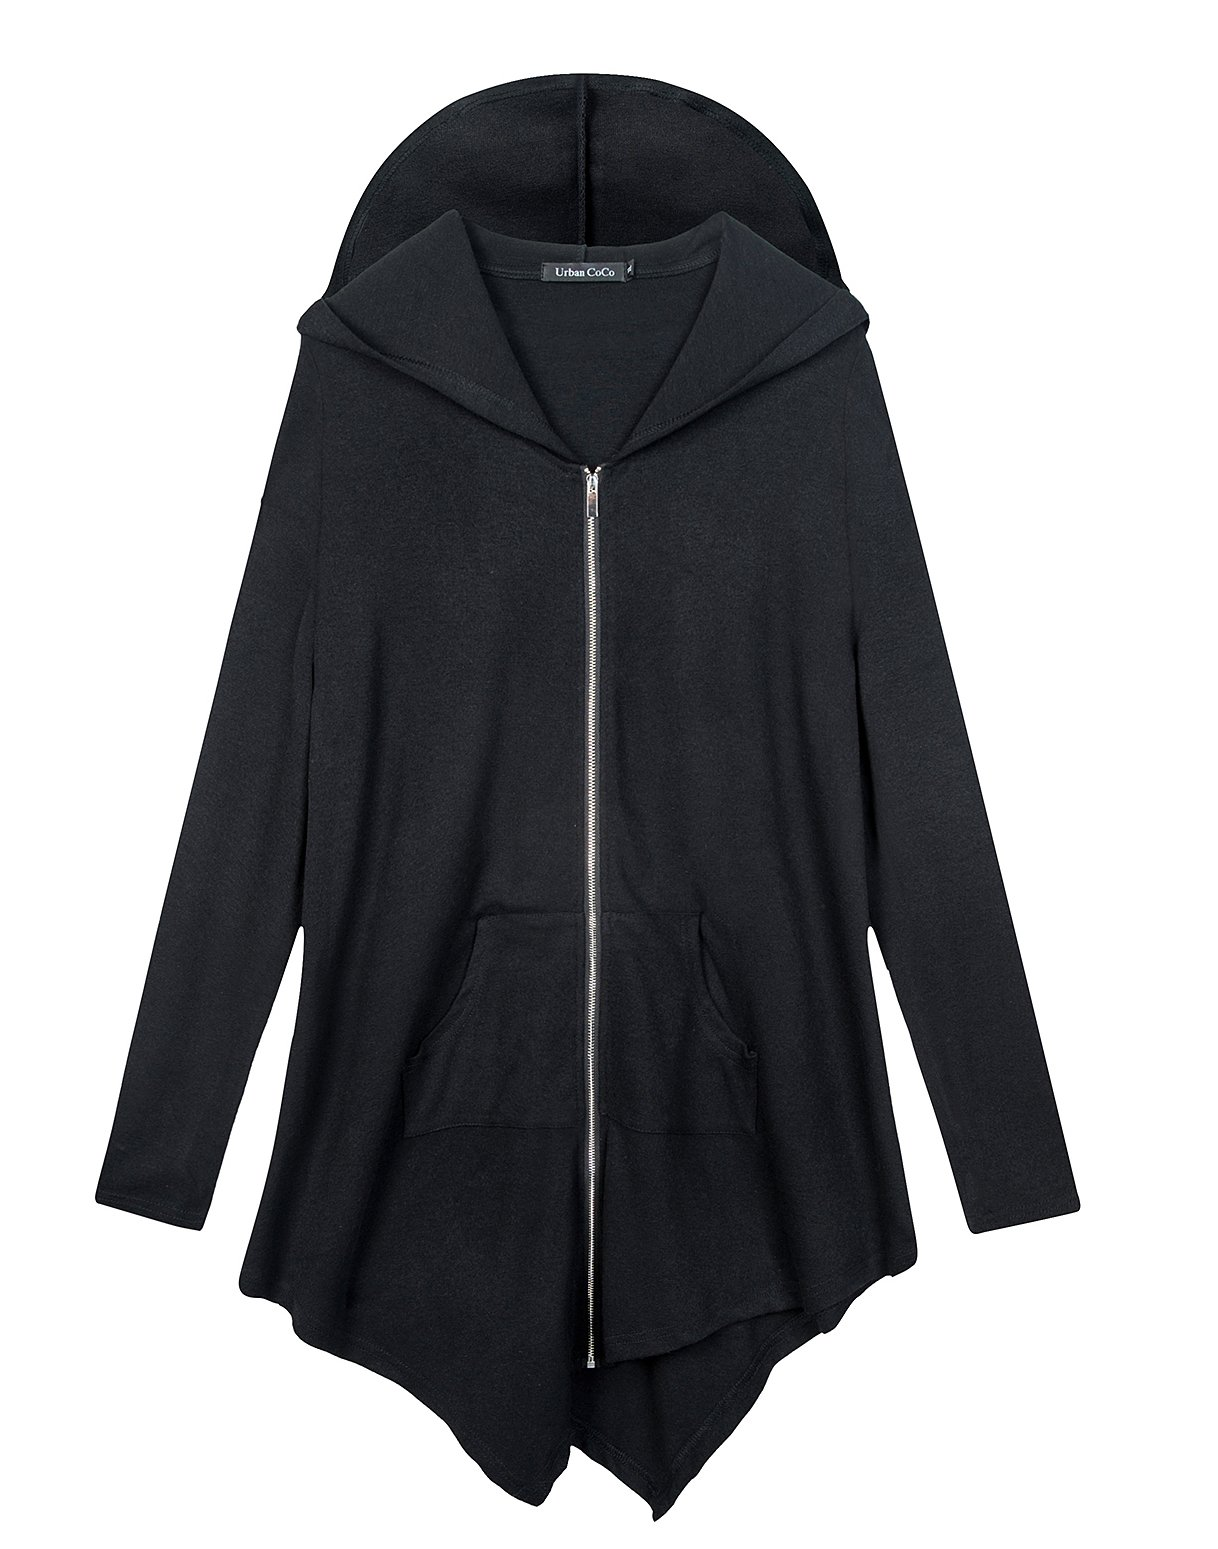 Urban CoCo Women's Hooded Sweatshirt Jacket Cape Style (3XL, Black)